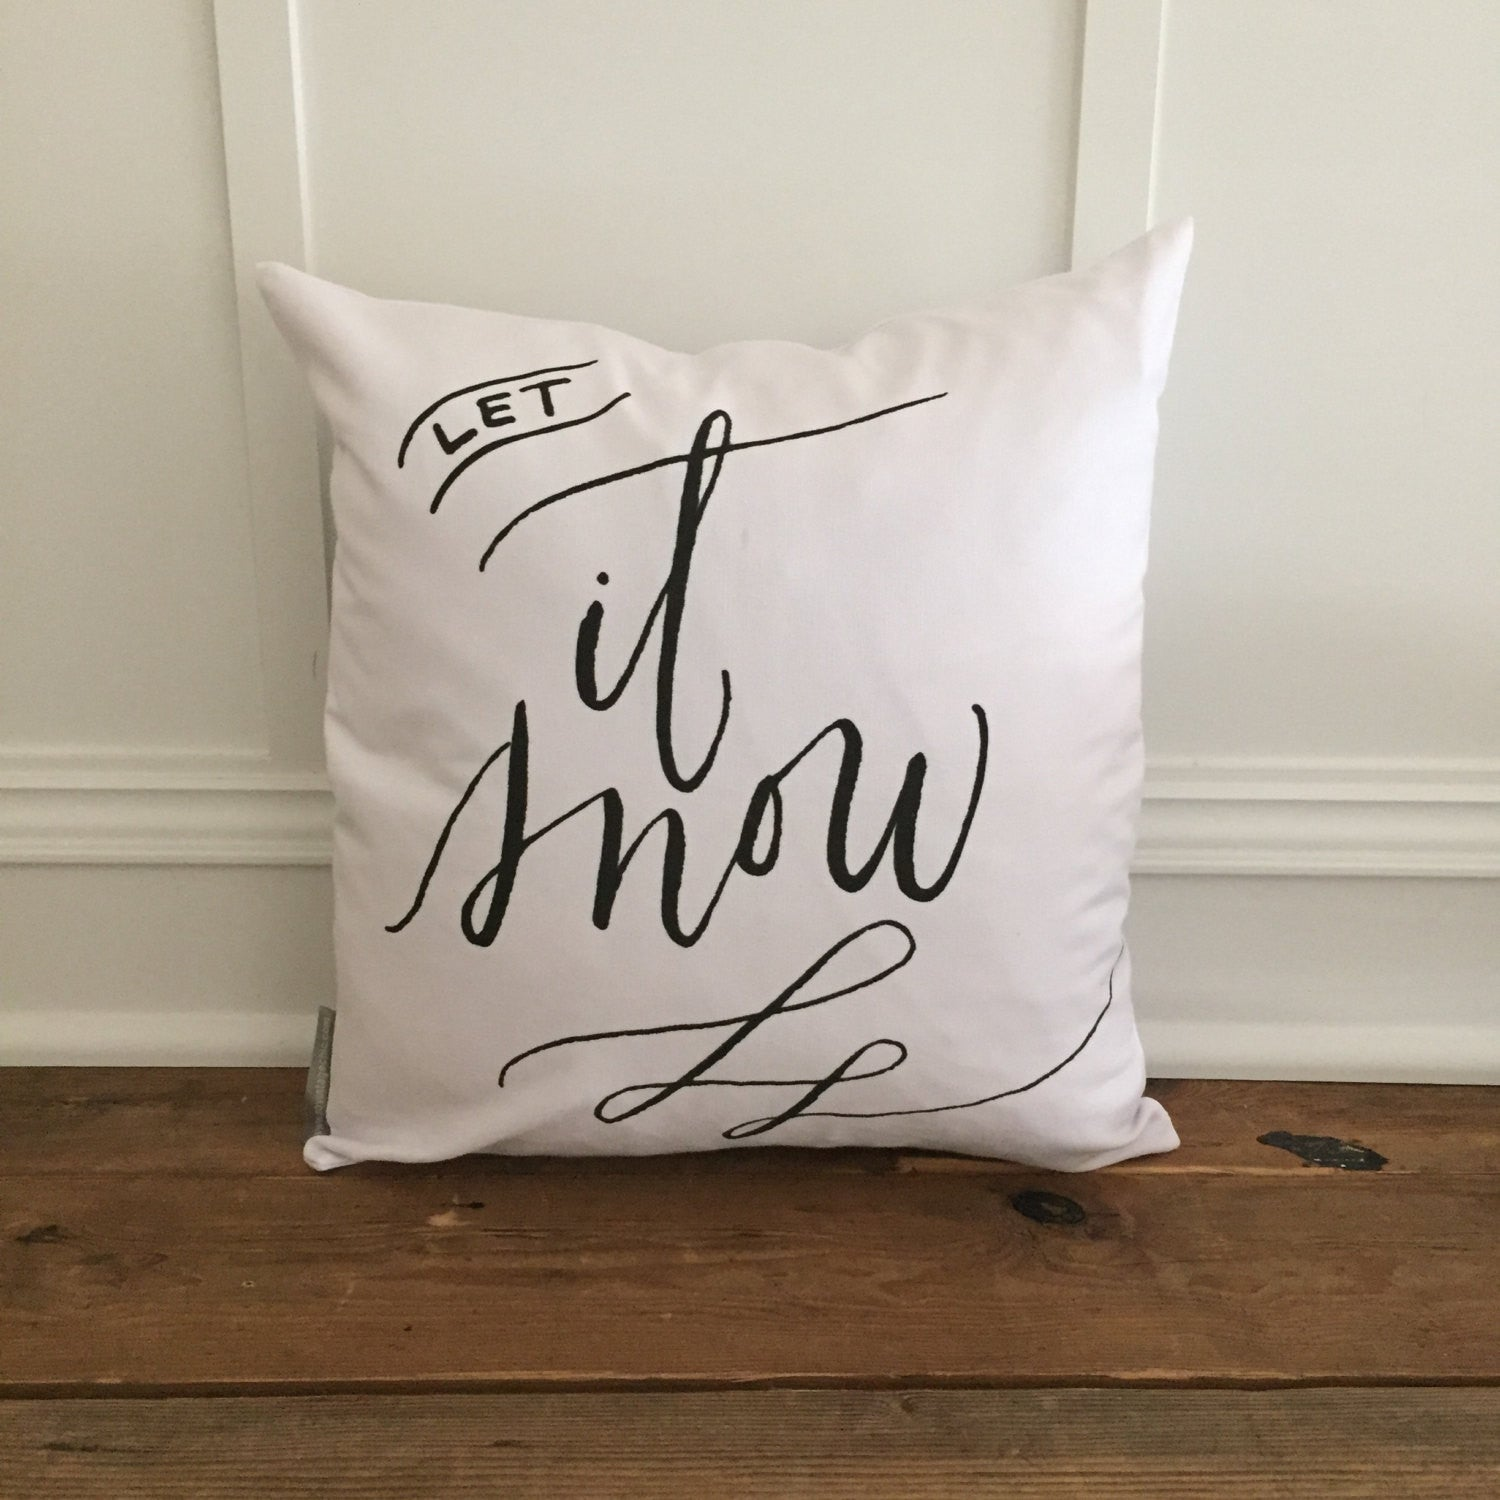 Let It Snow Pillow Cover - Linen and Ivory